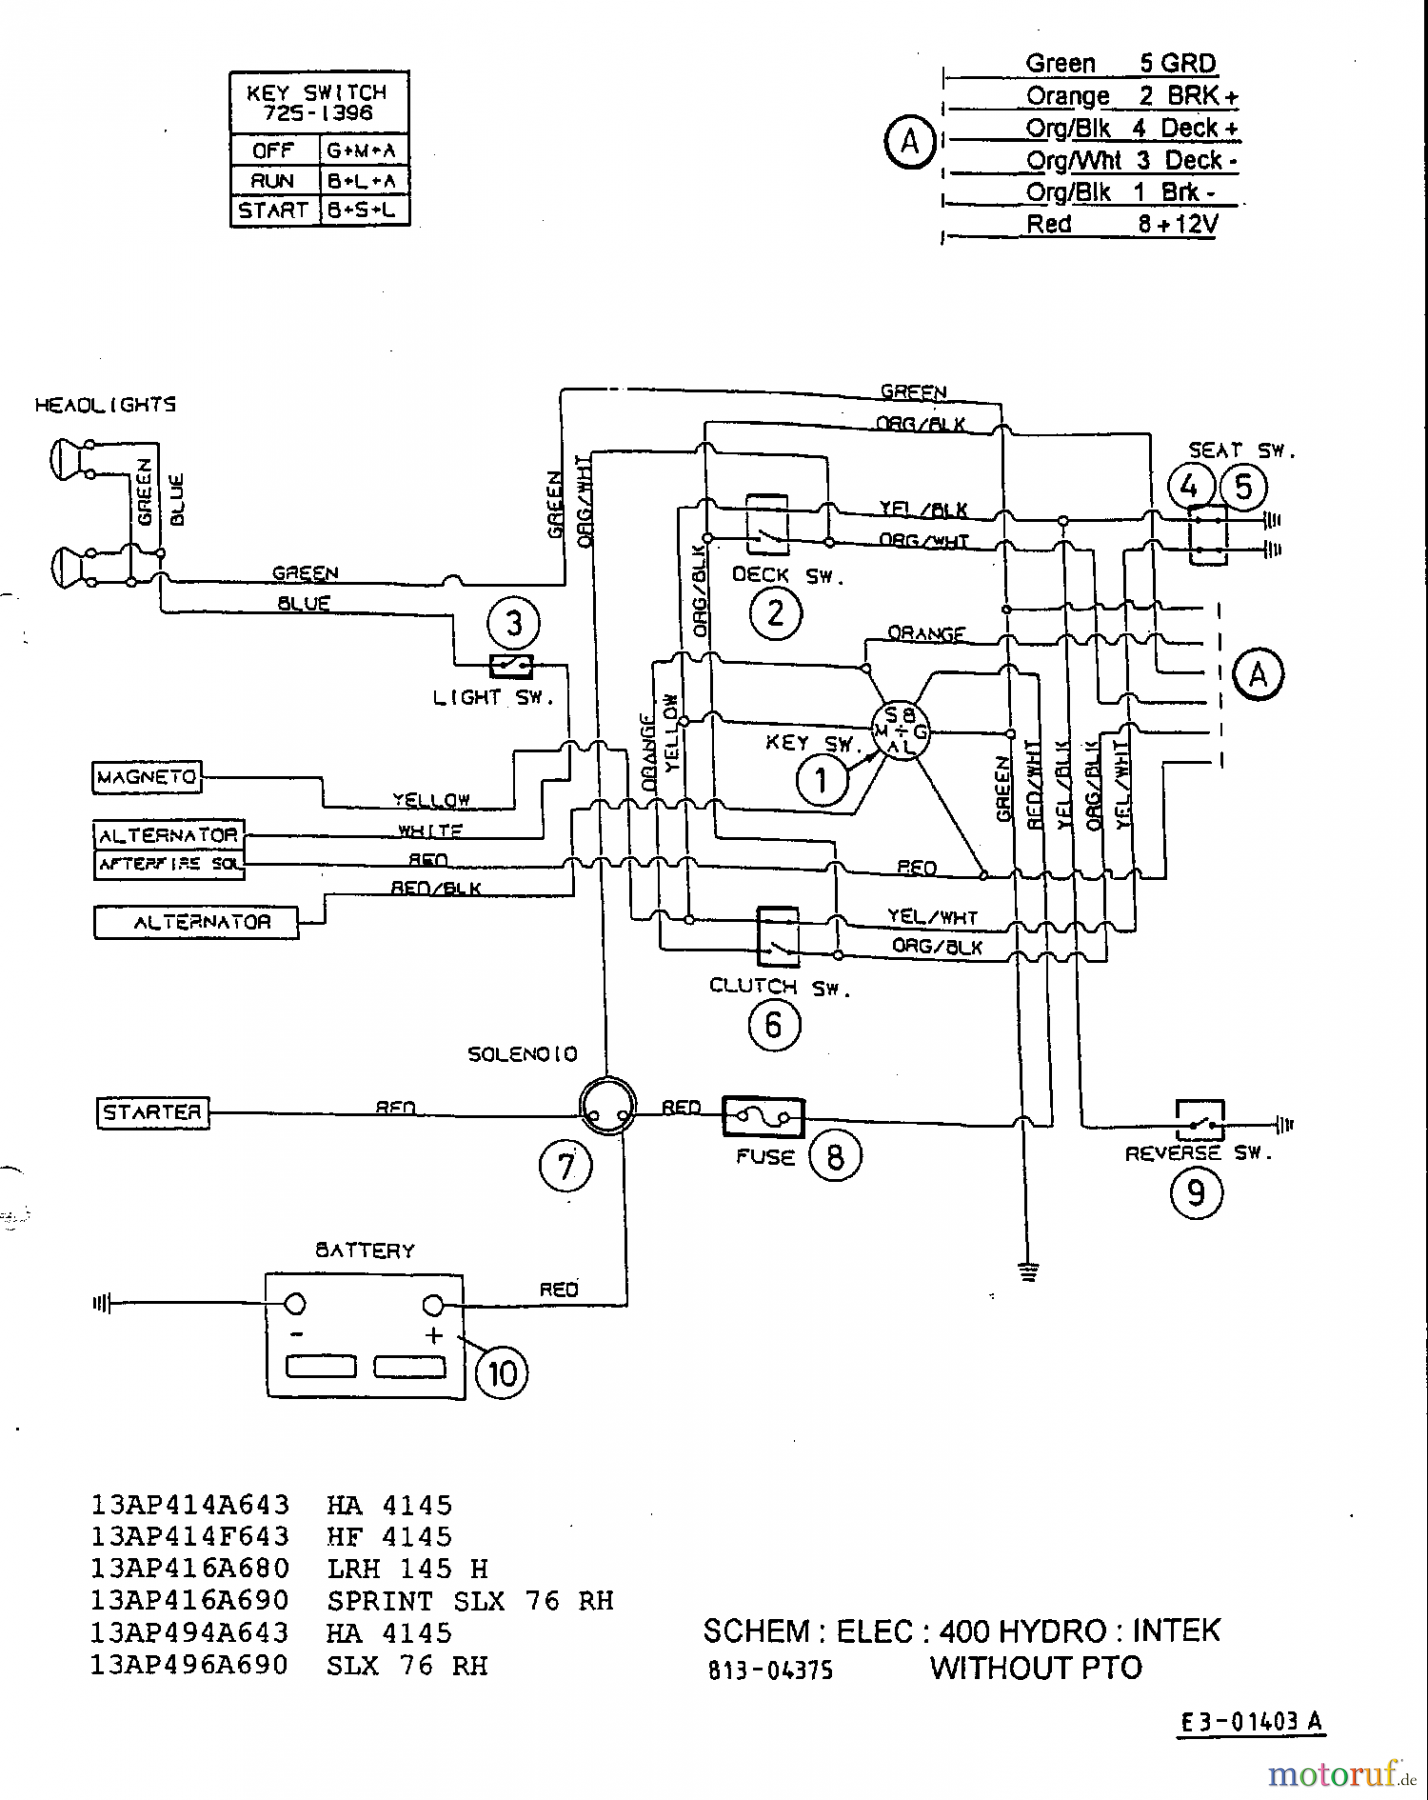 medium resolution of agway lawn mower wiring diagram simple wiring diagrams rh 37 studio011 de toro timecutter wiring diagram ss 5000 toro timecutter wiring diagram ss 5000